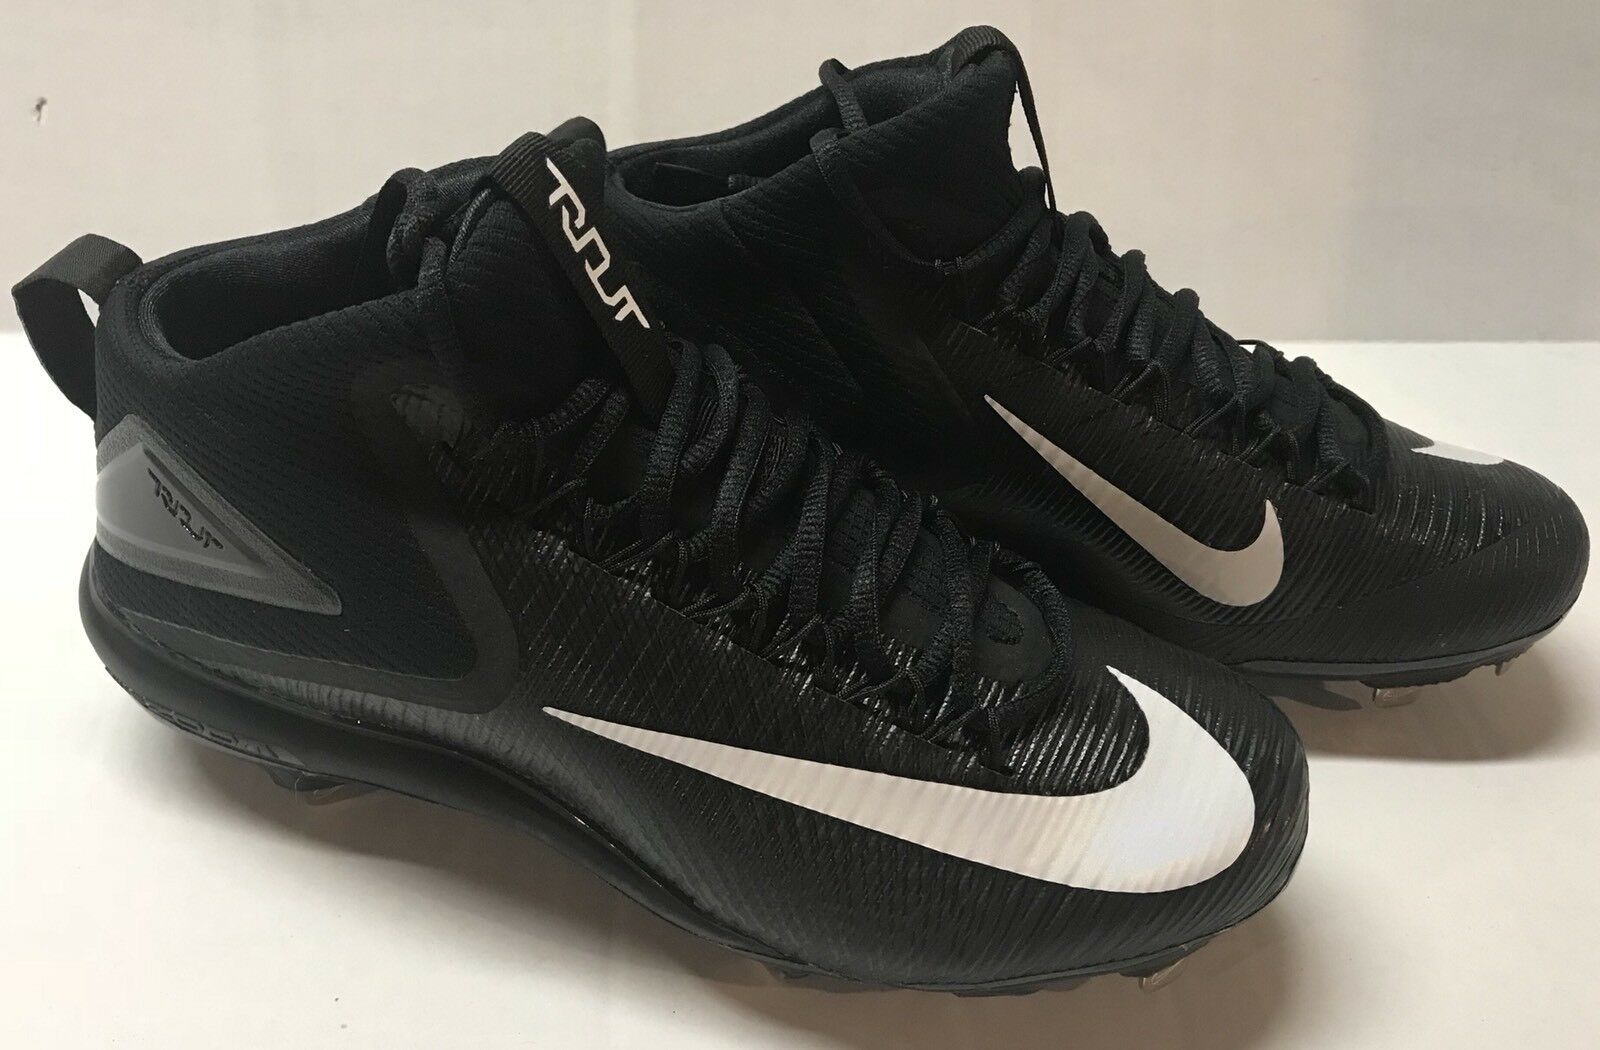 NEW  NIKE Mens Sz 9 Force Zoom Mike Trout 3 Metal Baseball Cleats 856503-011